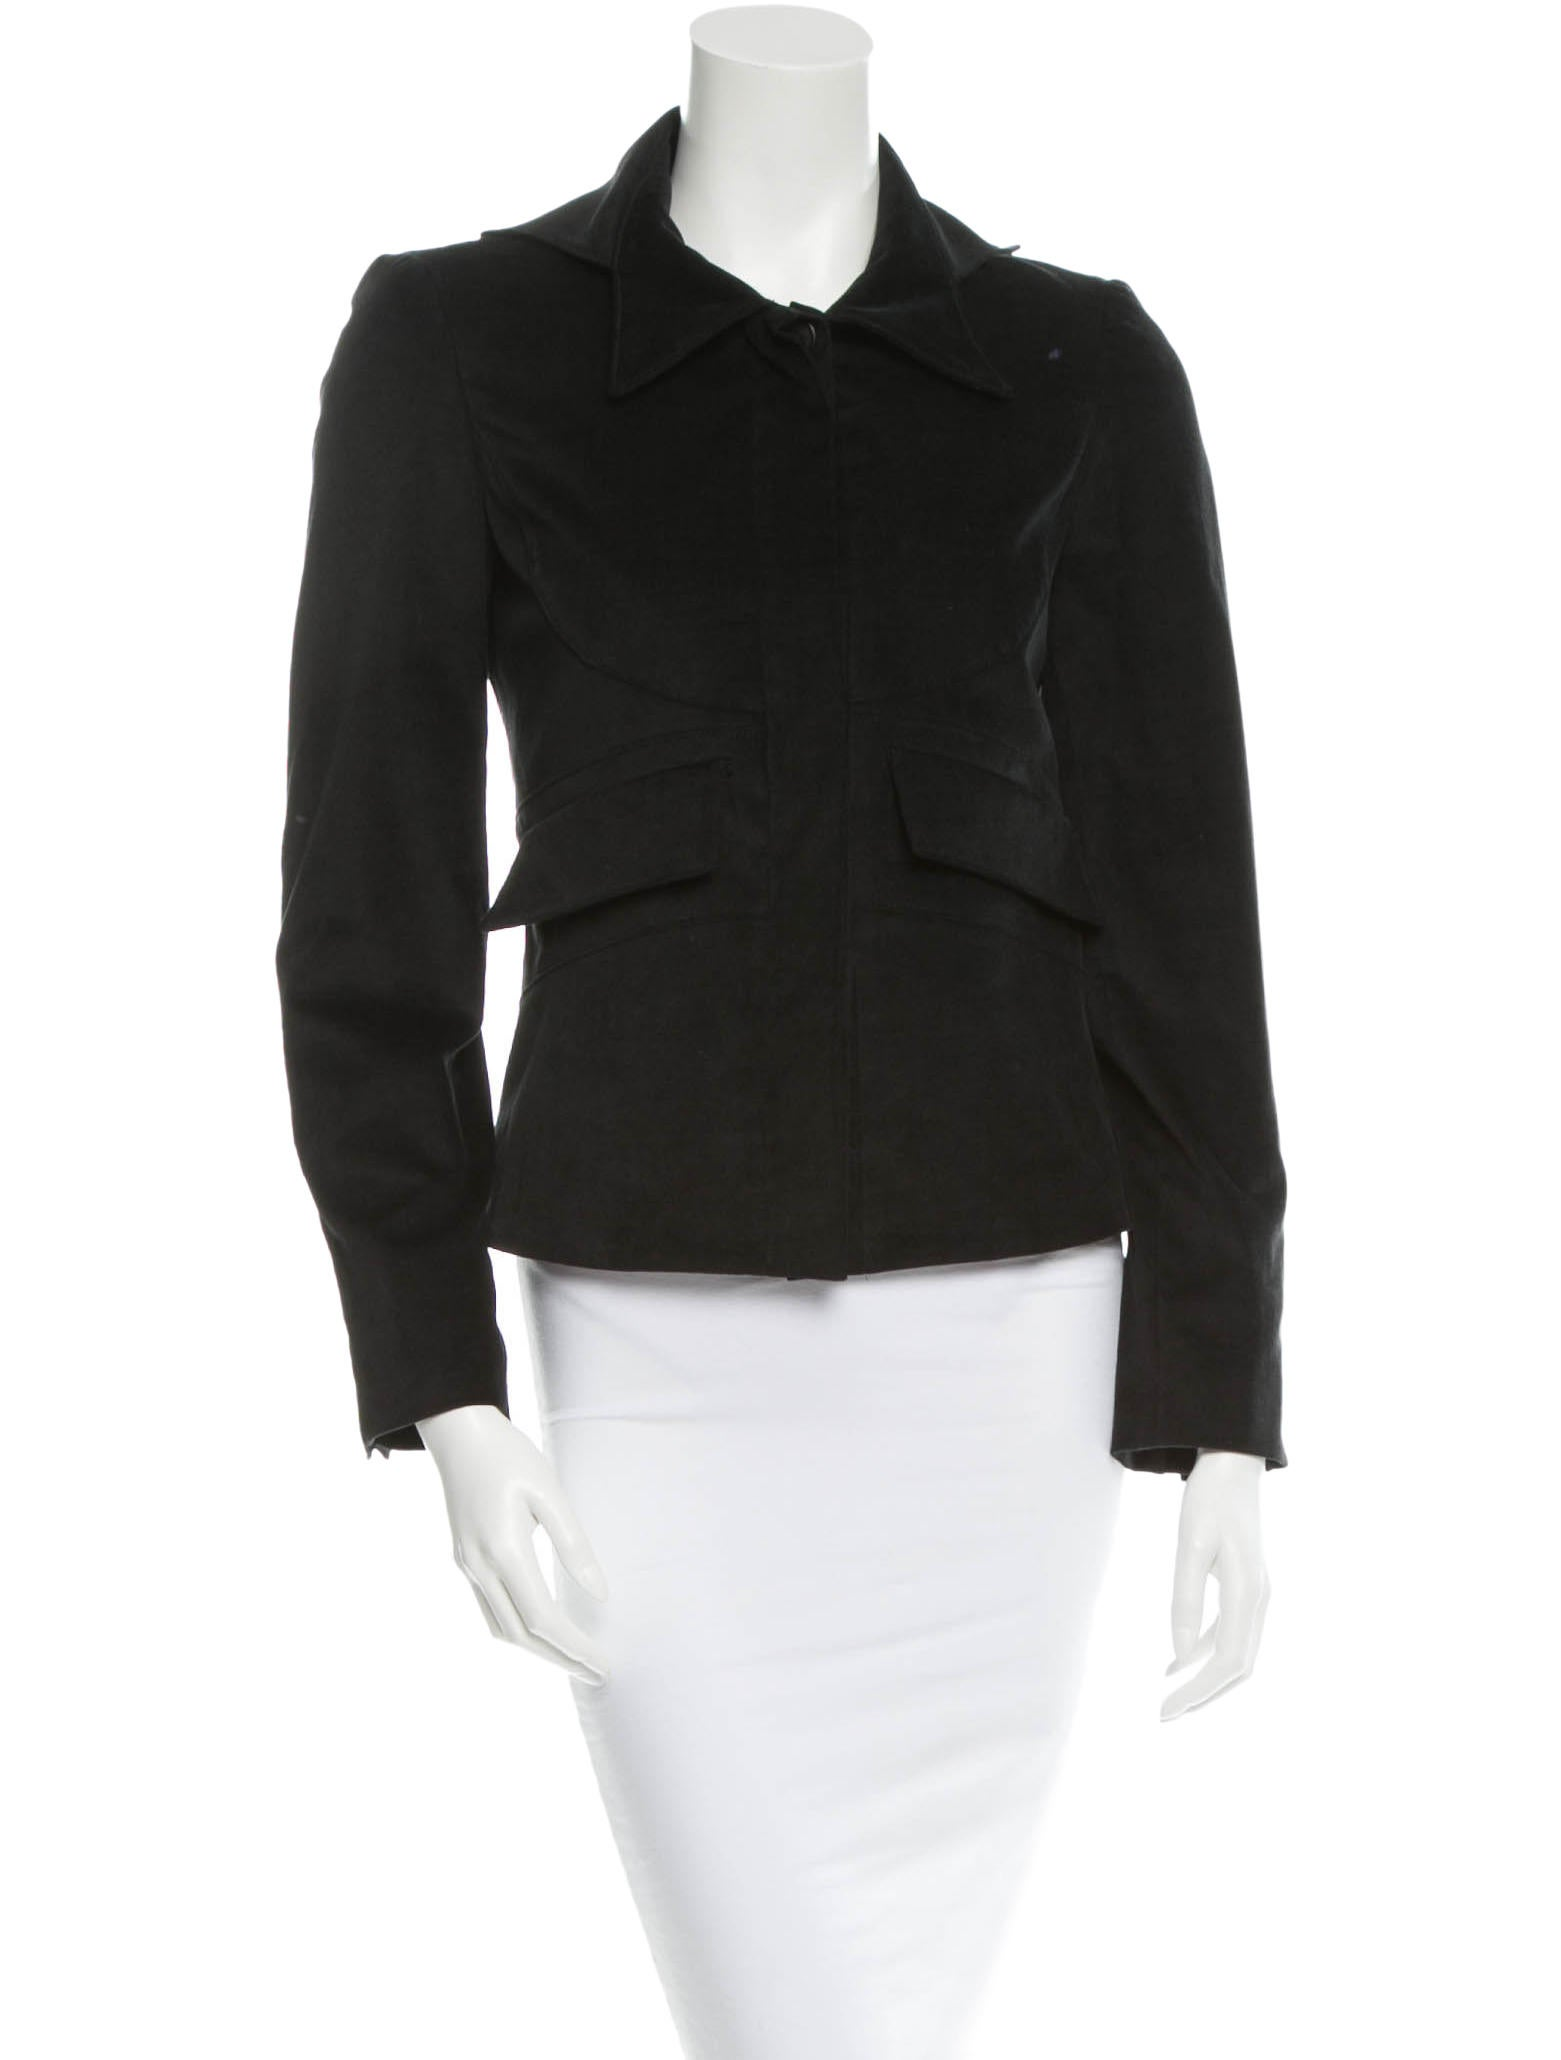 Salvatore Ferragamo Jacket - Clothing - SAL26992 - The ...